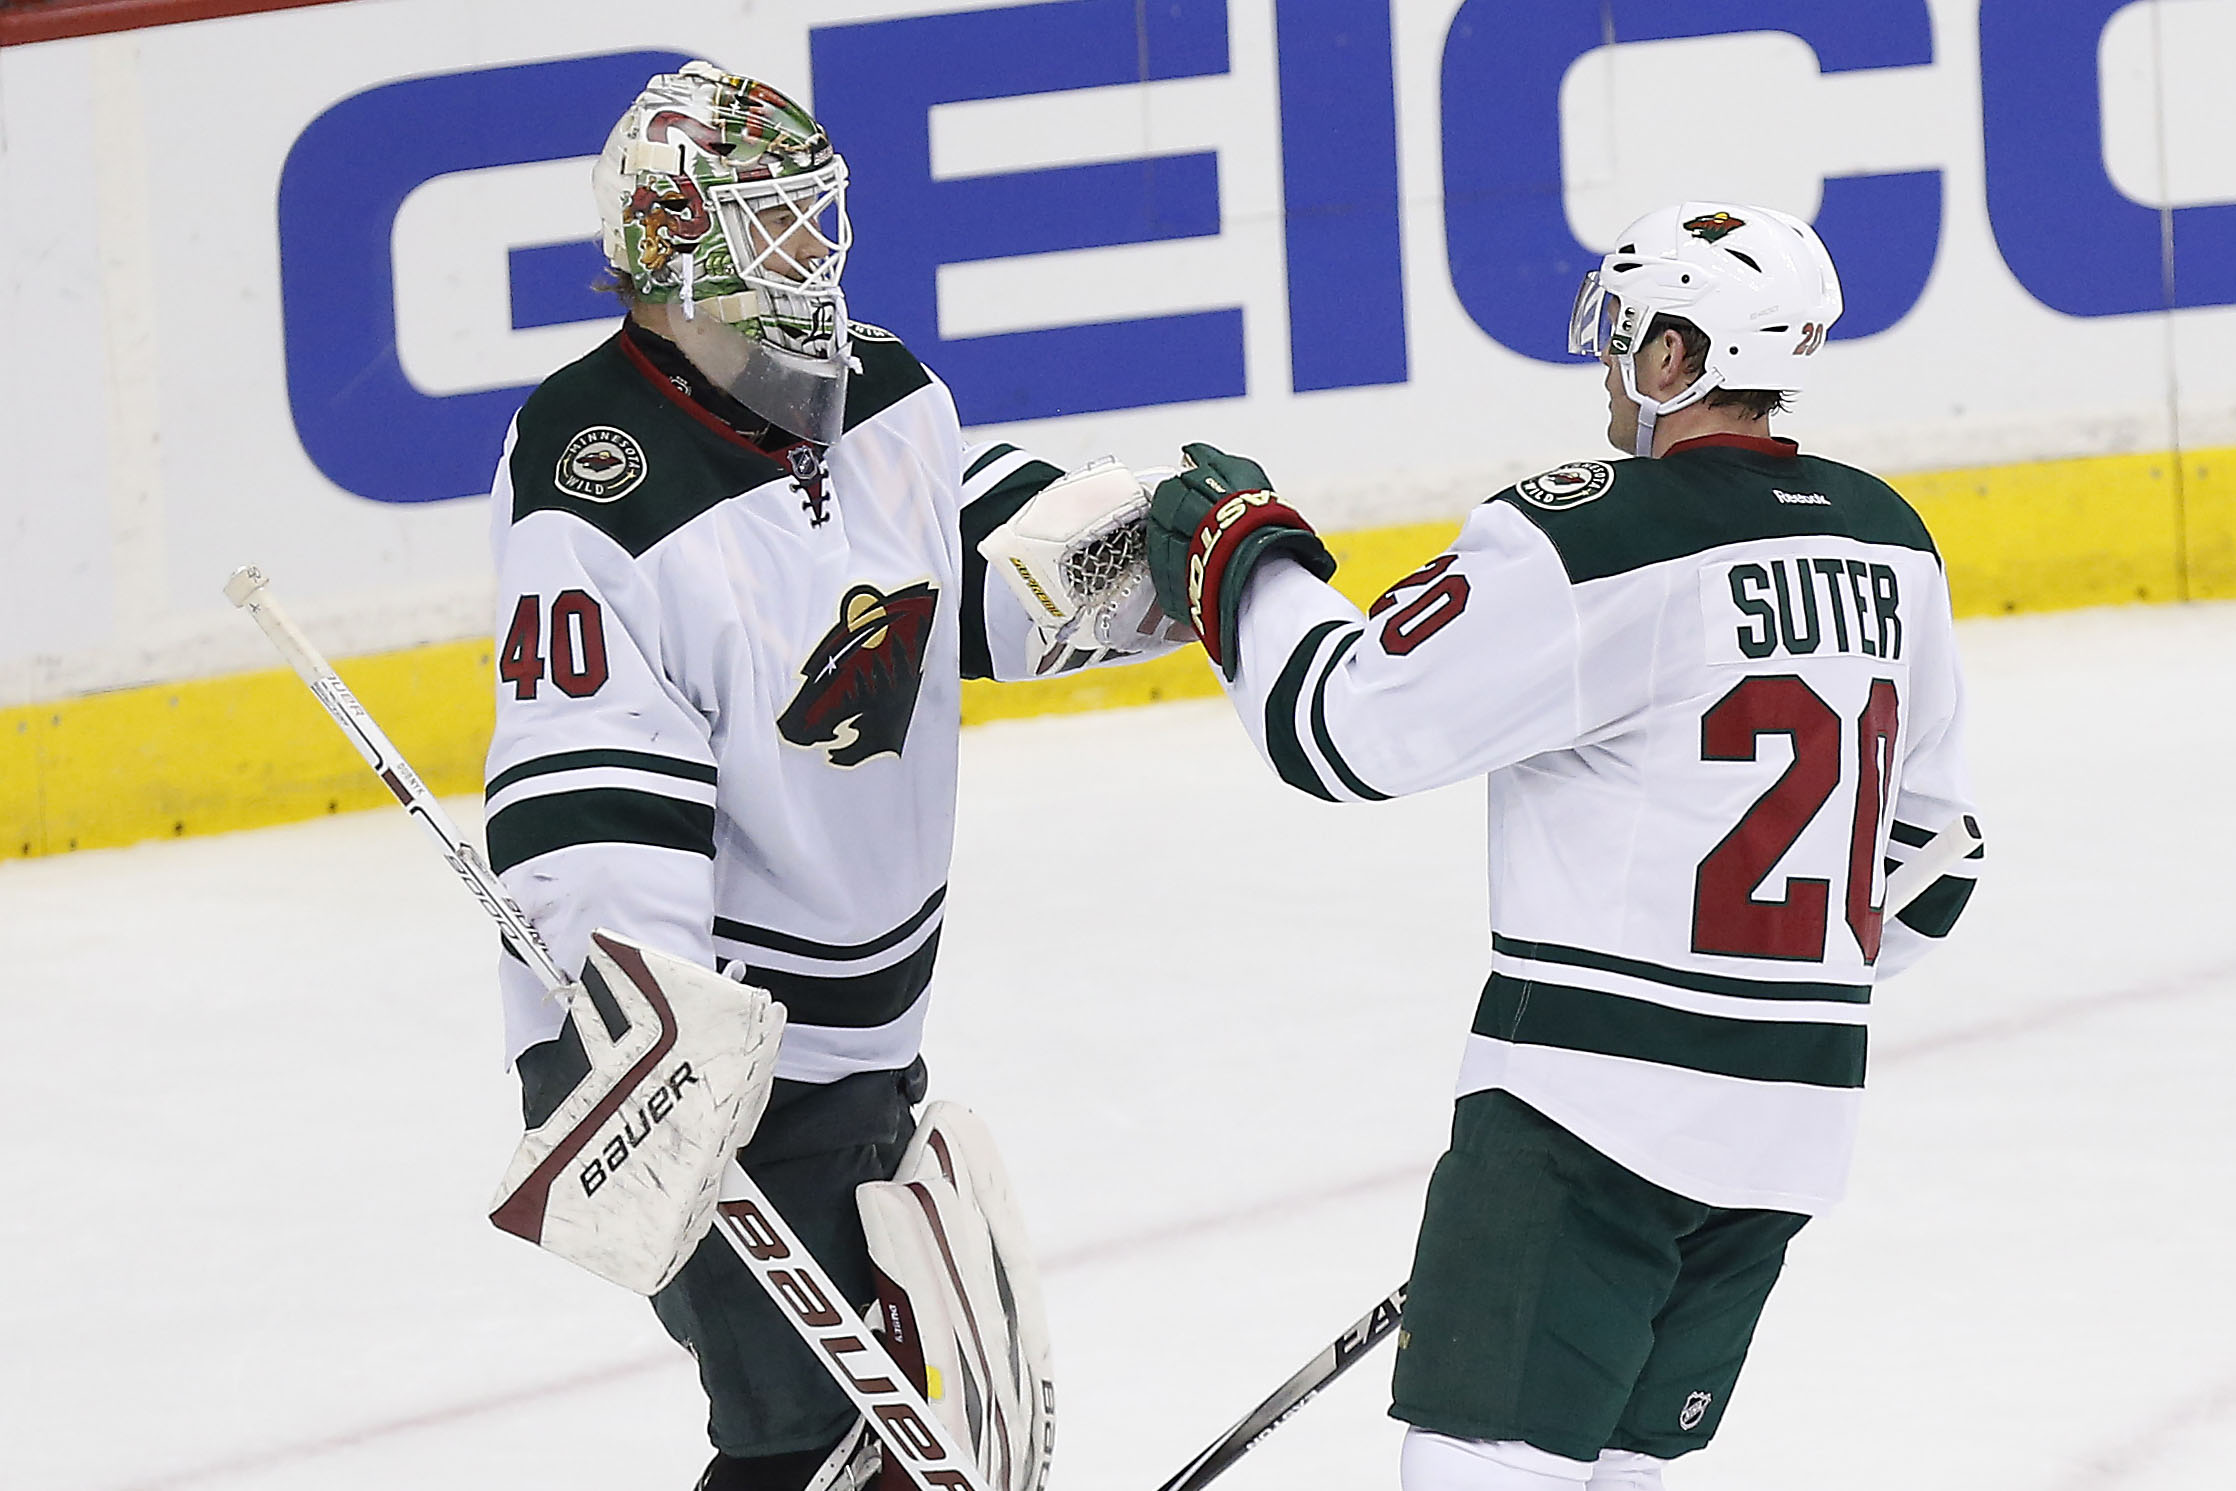 Can We Give Devan Dubnyk An Award Or Something For Saving Wild?